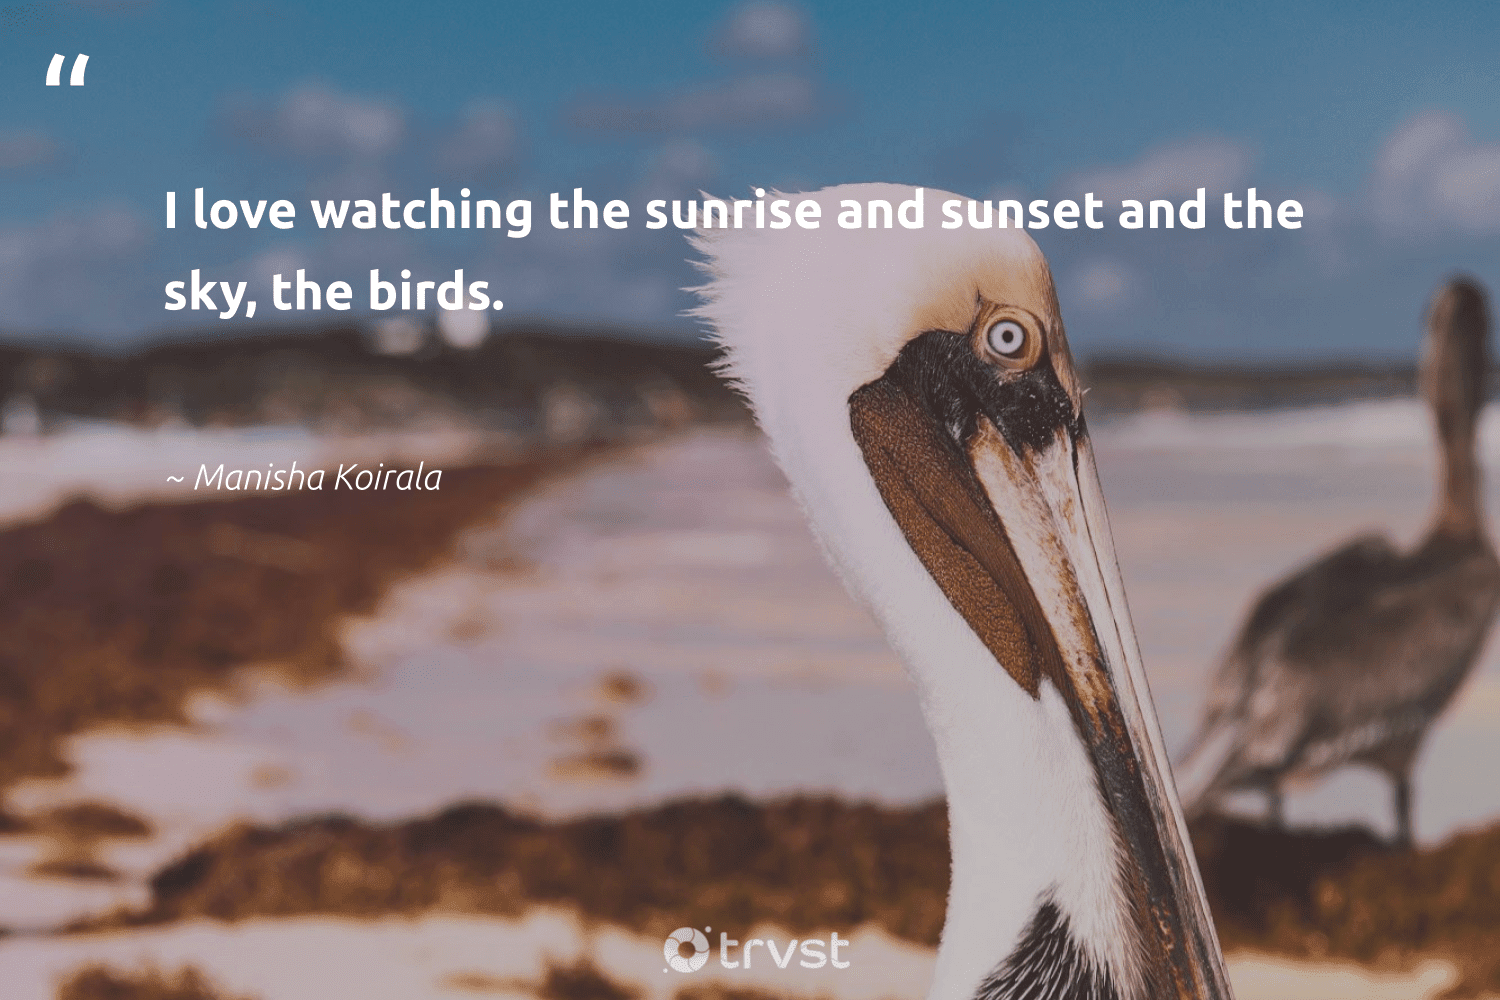 """""""I love watching the sunrise and sunset and the sky, the birds.""""  - Manisha Koirala #trvst #quotes #love #sunset #birds #bird #nature #takeaction #biology #gogreen #geology #beinspired"""